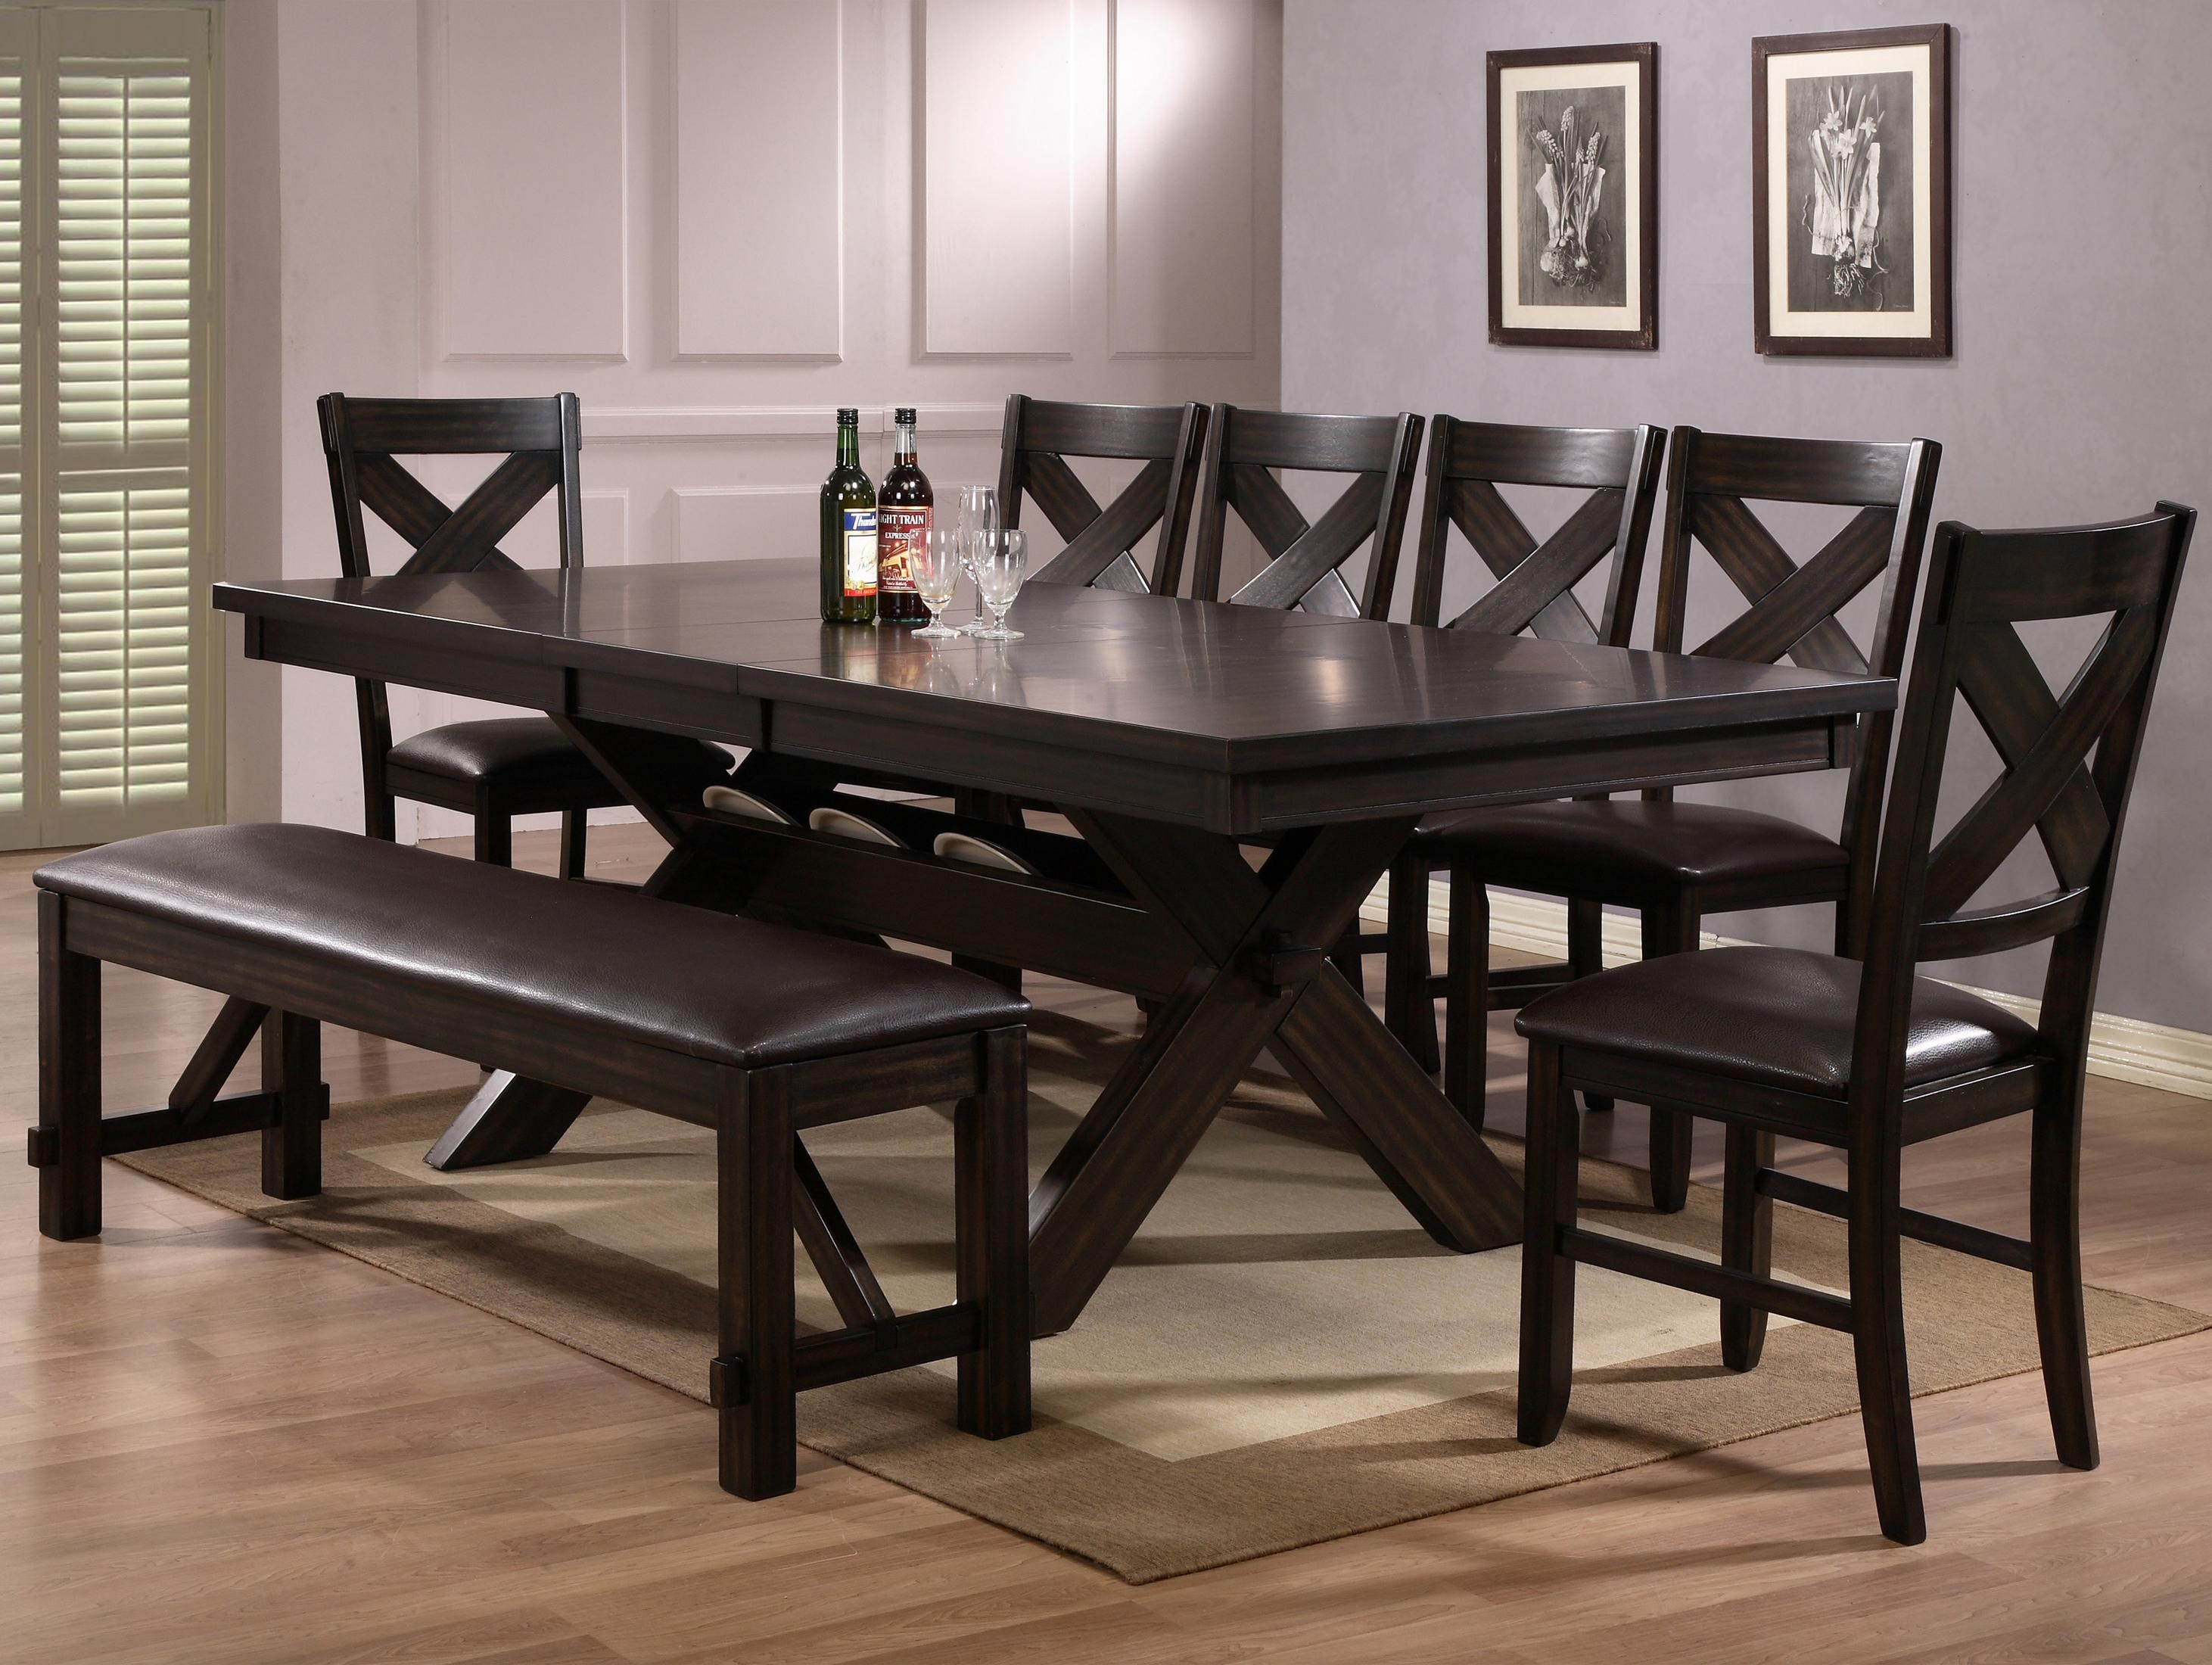 Superbe Rectangular Dining Table With Storage   Havana By Crown Mark   Wilcox  Furniture   Dining Tables Corpus Christi, Kingsville, Calallen, Texas